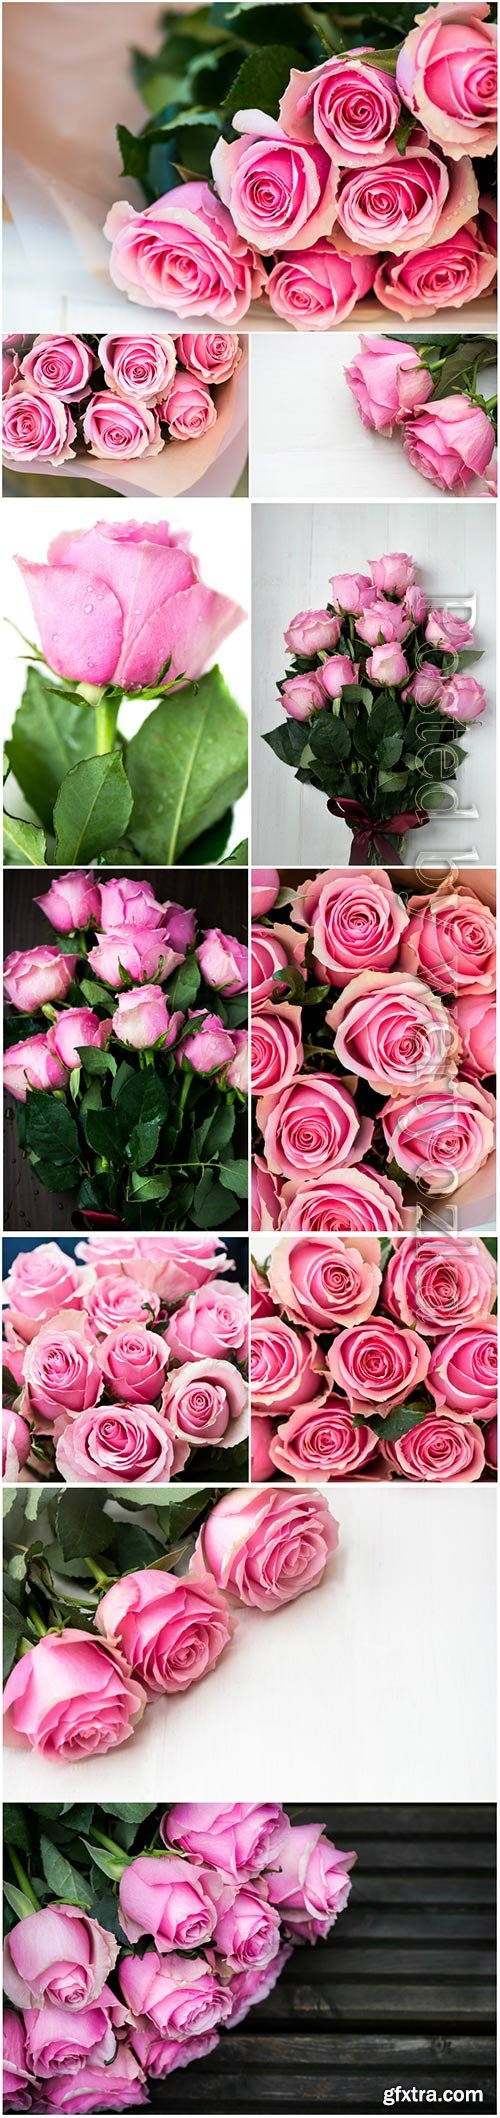 Bouquets of pink roses beautiful stock photo